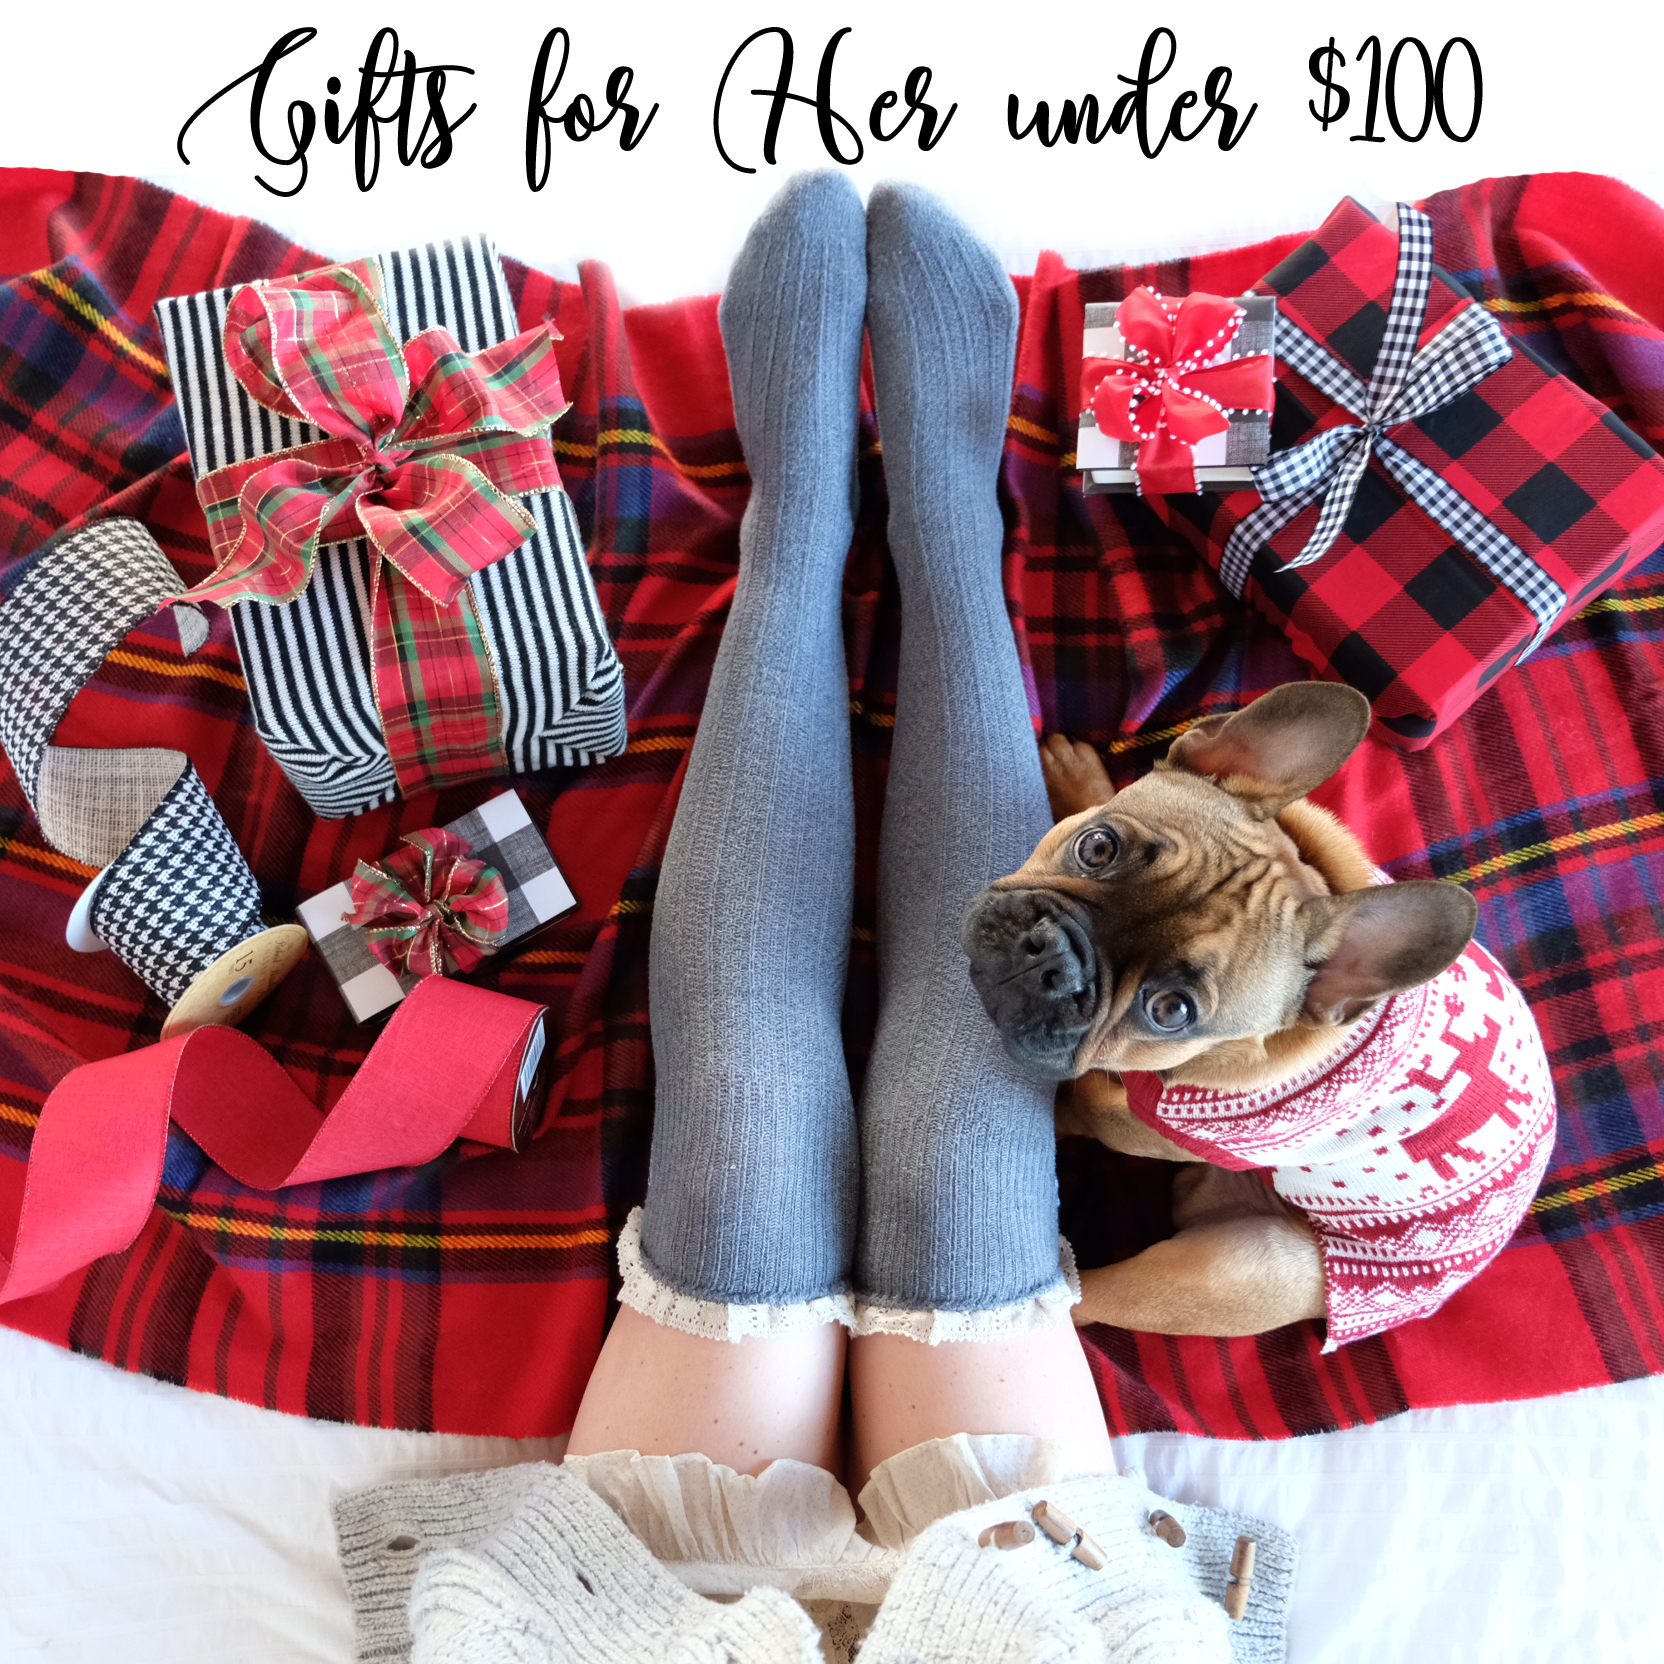 Gifts for her under $100, inexpensive gifts for your girlfriends, unique Christmas gift ideas for women.